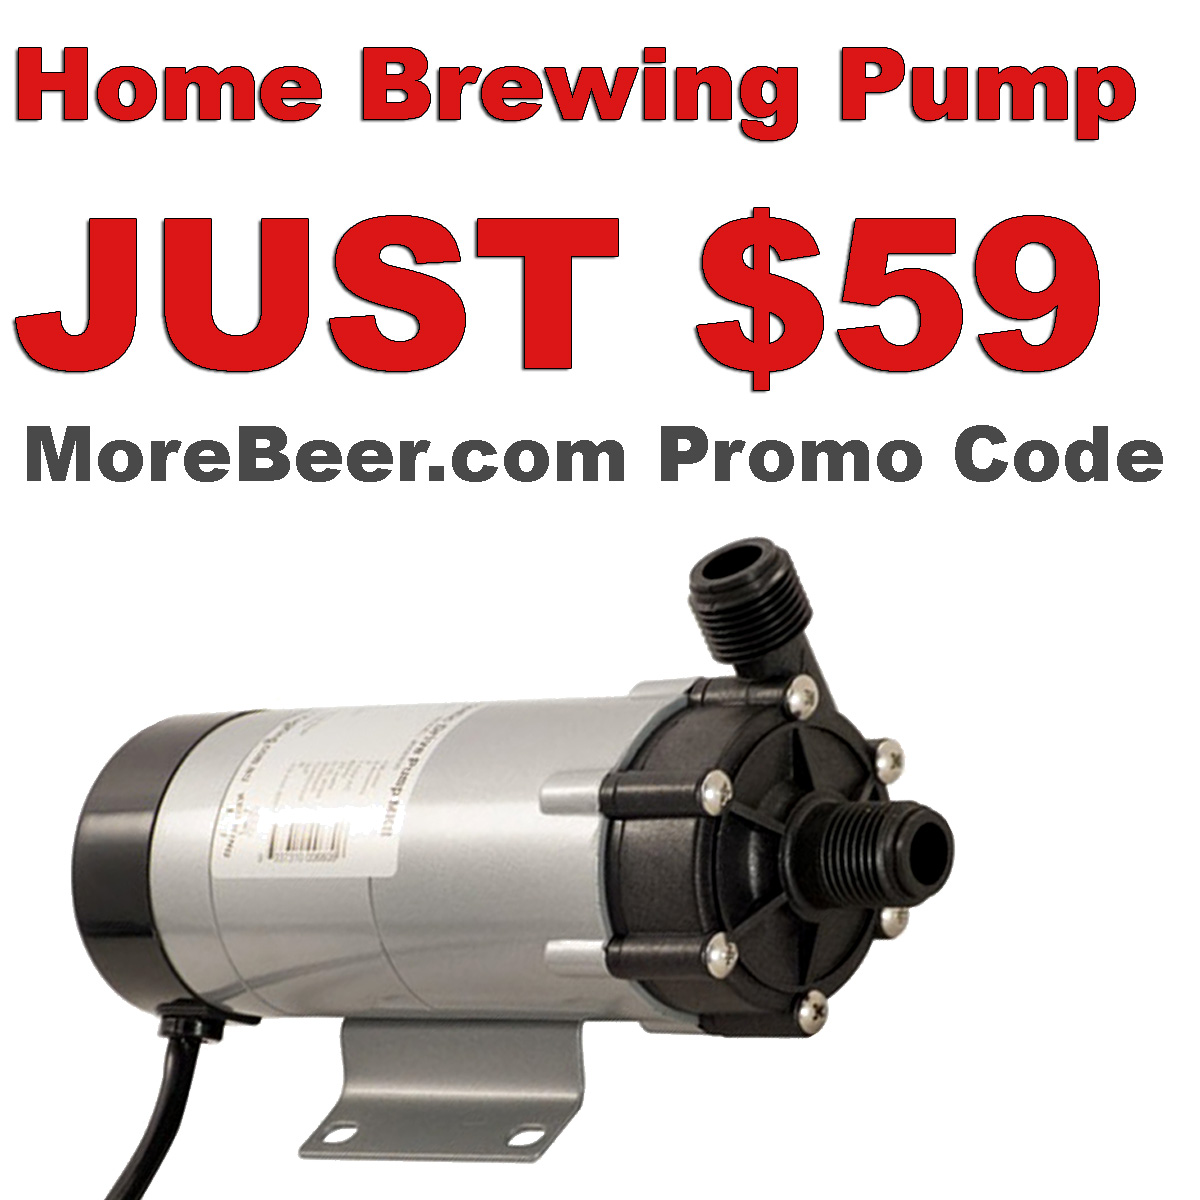 MoreBeer Use MoreBeer.com promo code BEERDEAL and get this Homebrewing Pump for Just $59 plus free shipping while supplies last! Coupon Code